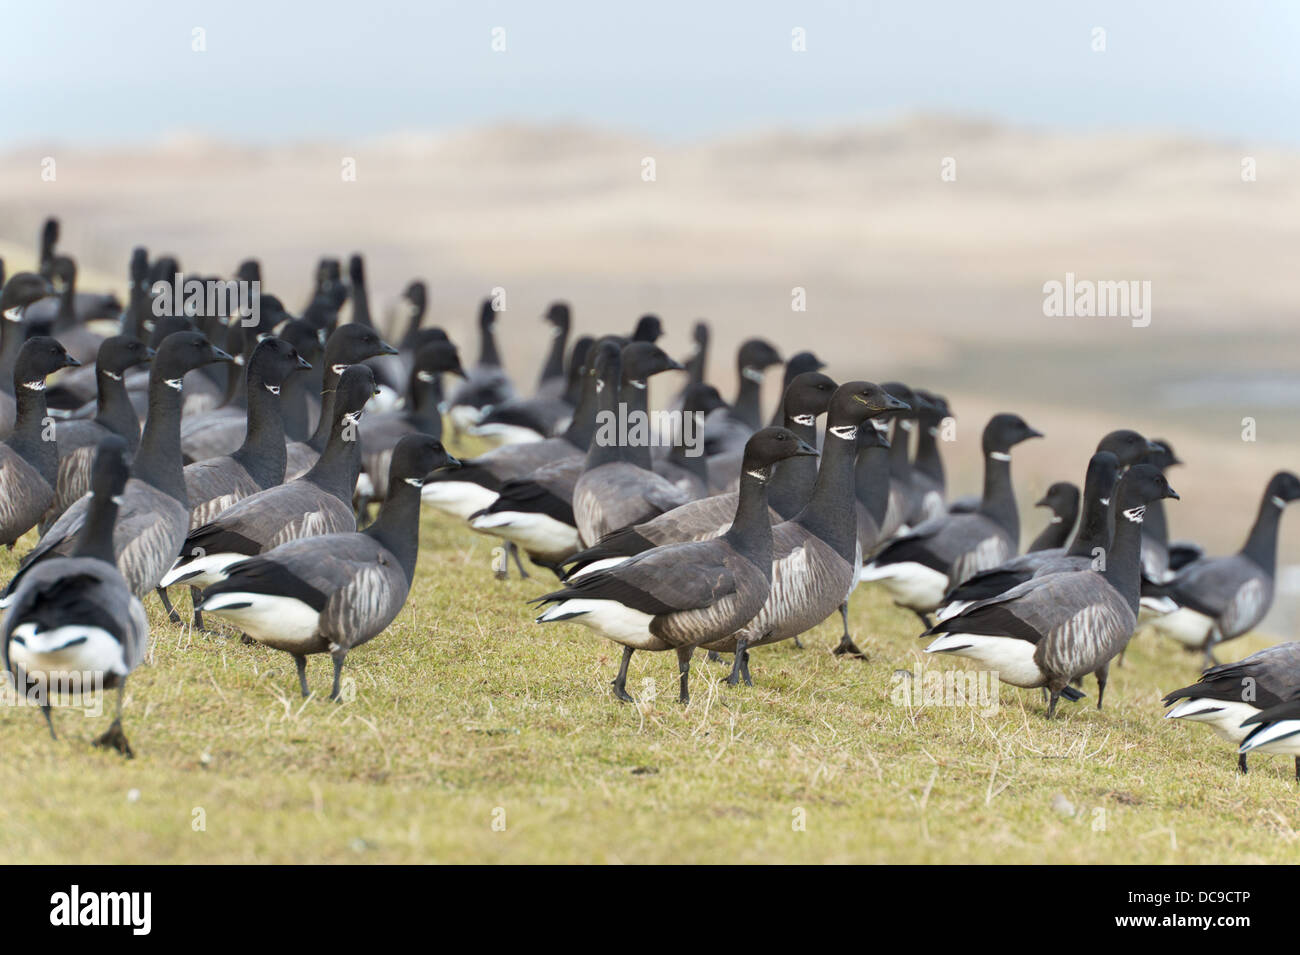 Swarm brent gooses walking in nature grass - Stock Image